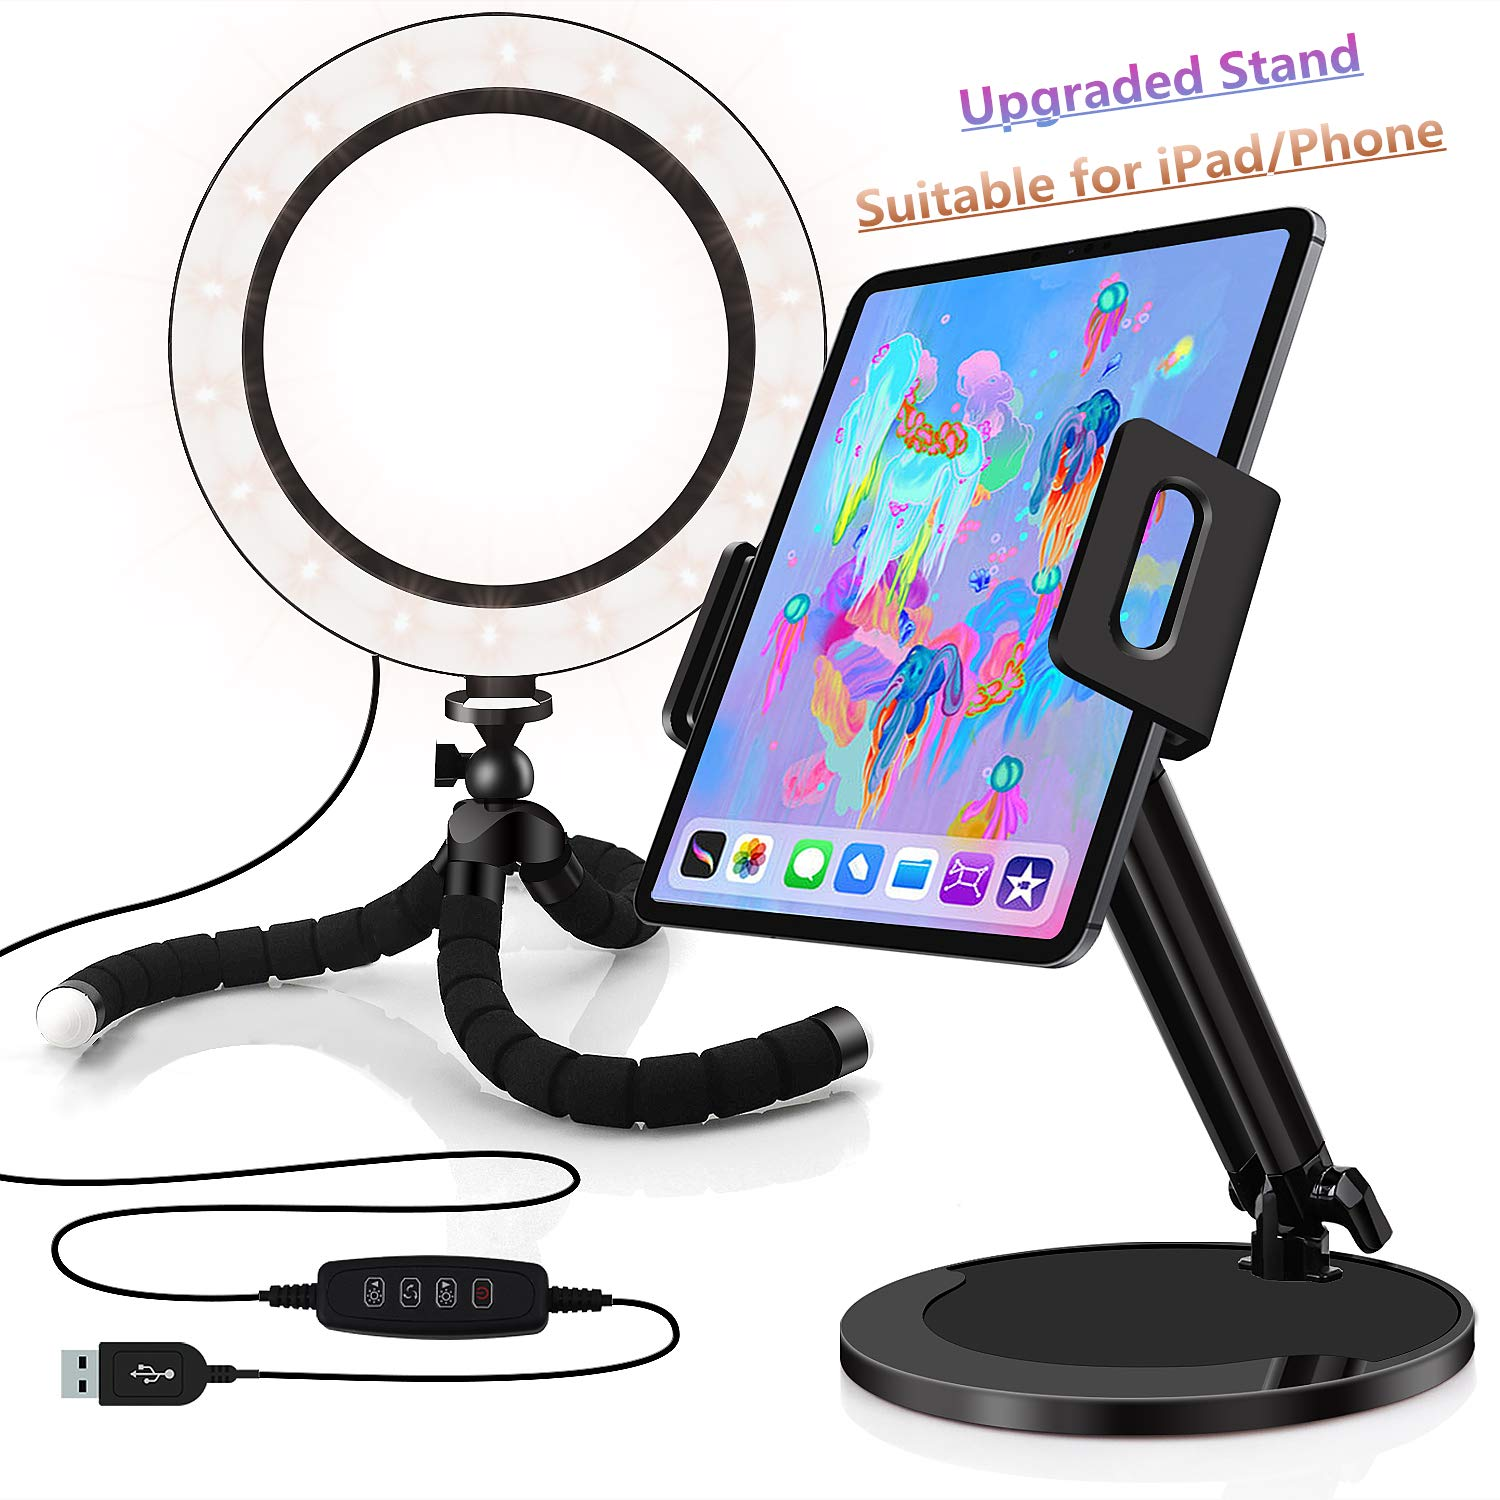 8-inch Ring Light with Stand - Adjustable Phone/Tablet Holder, Compatible with iPad/iPhone/Samsung/Android/Fire Tablets, Ideal for Video/Live Streaming/Selfie/Makeup by GYTF